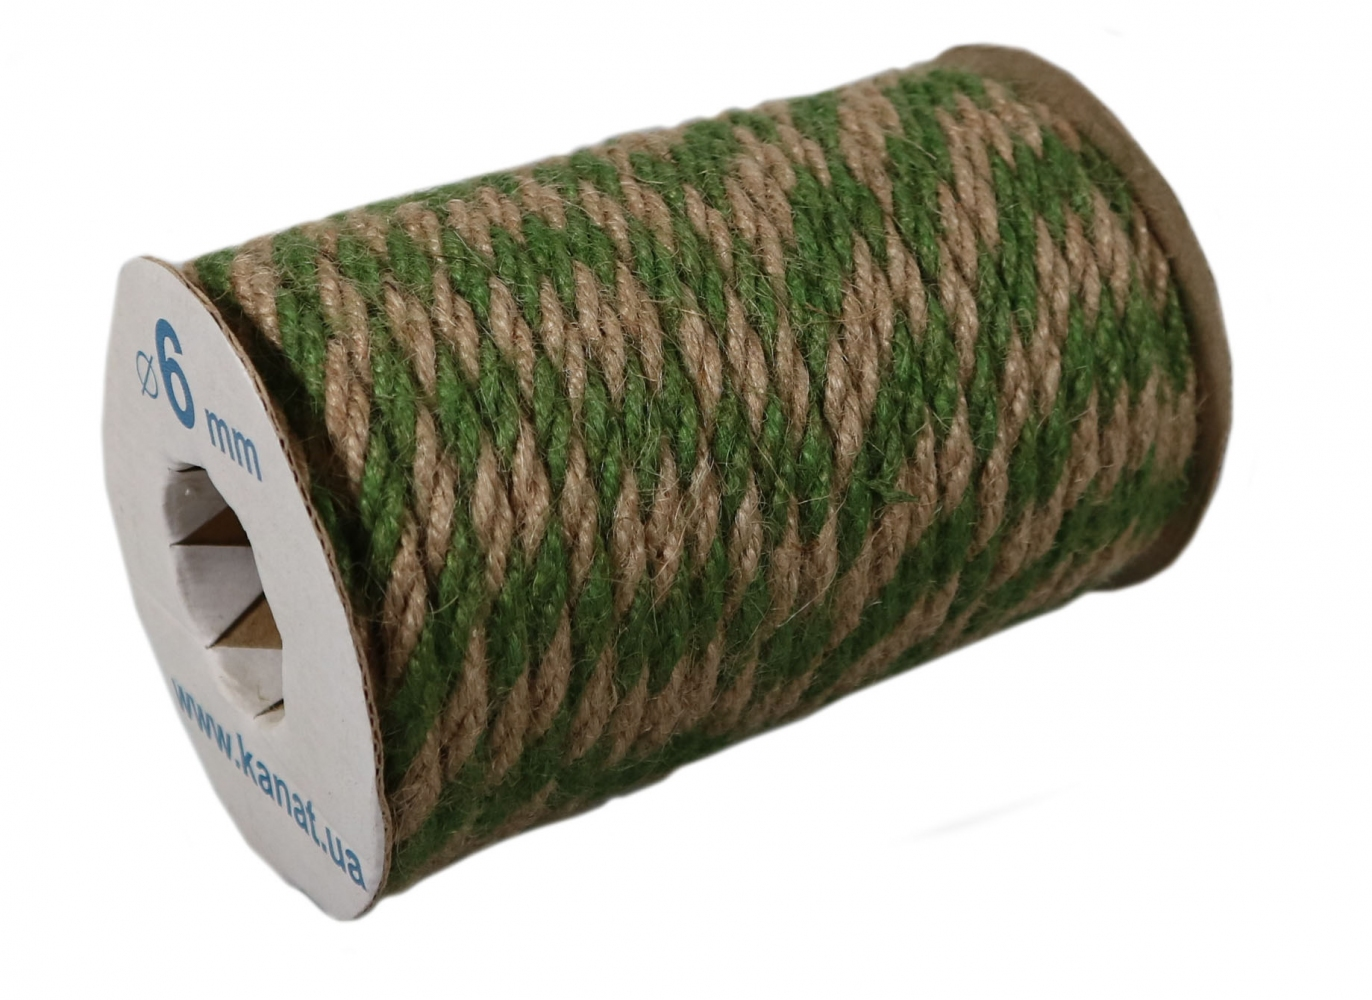 Jute rope natural-green, diameter 6mm, step of color 2+2, 25 meters - 1